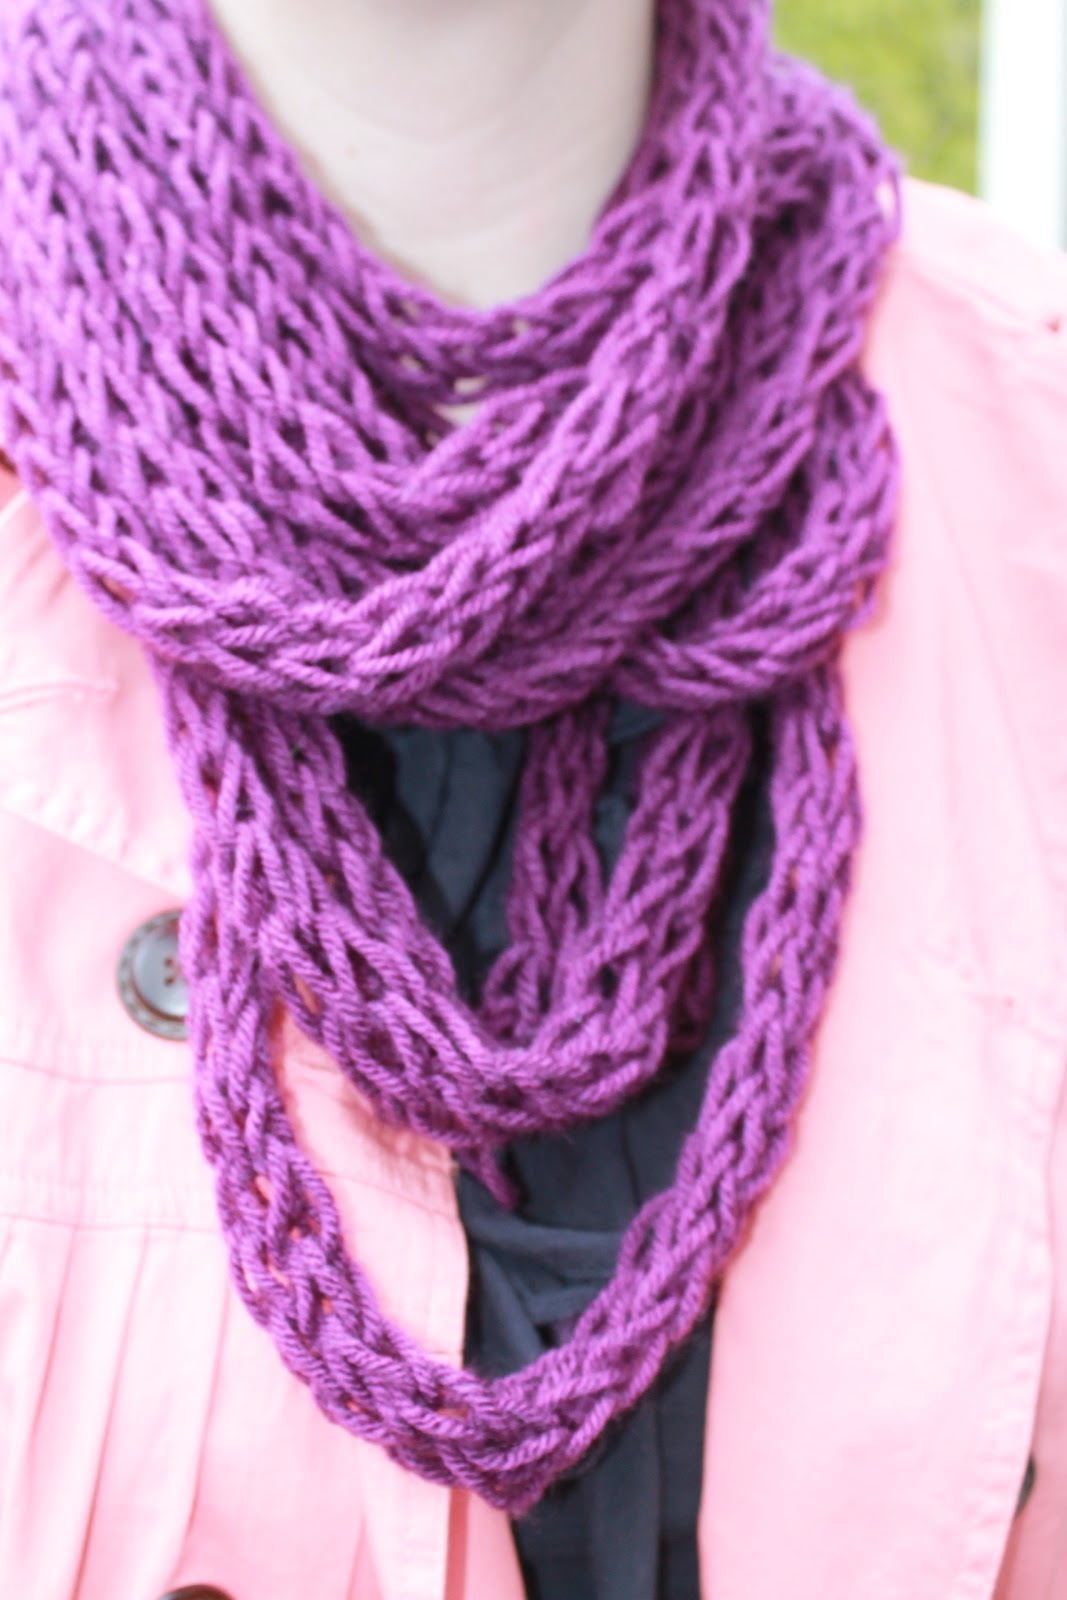 Knitting Scarf Tutorial : How to finger knit a scarf tutorial and patterns stitch